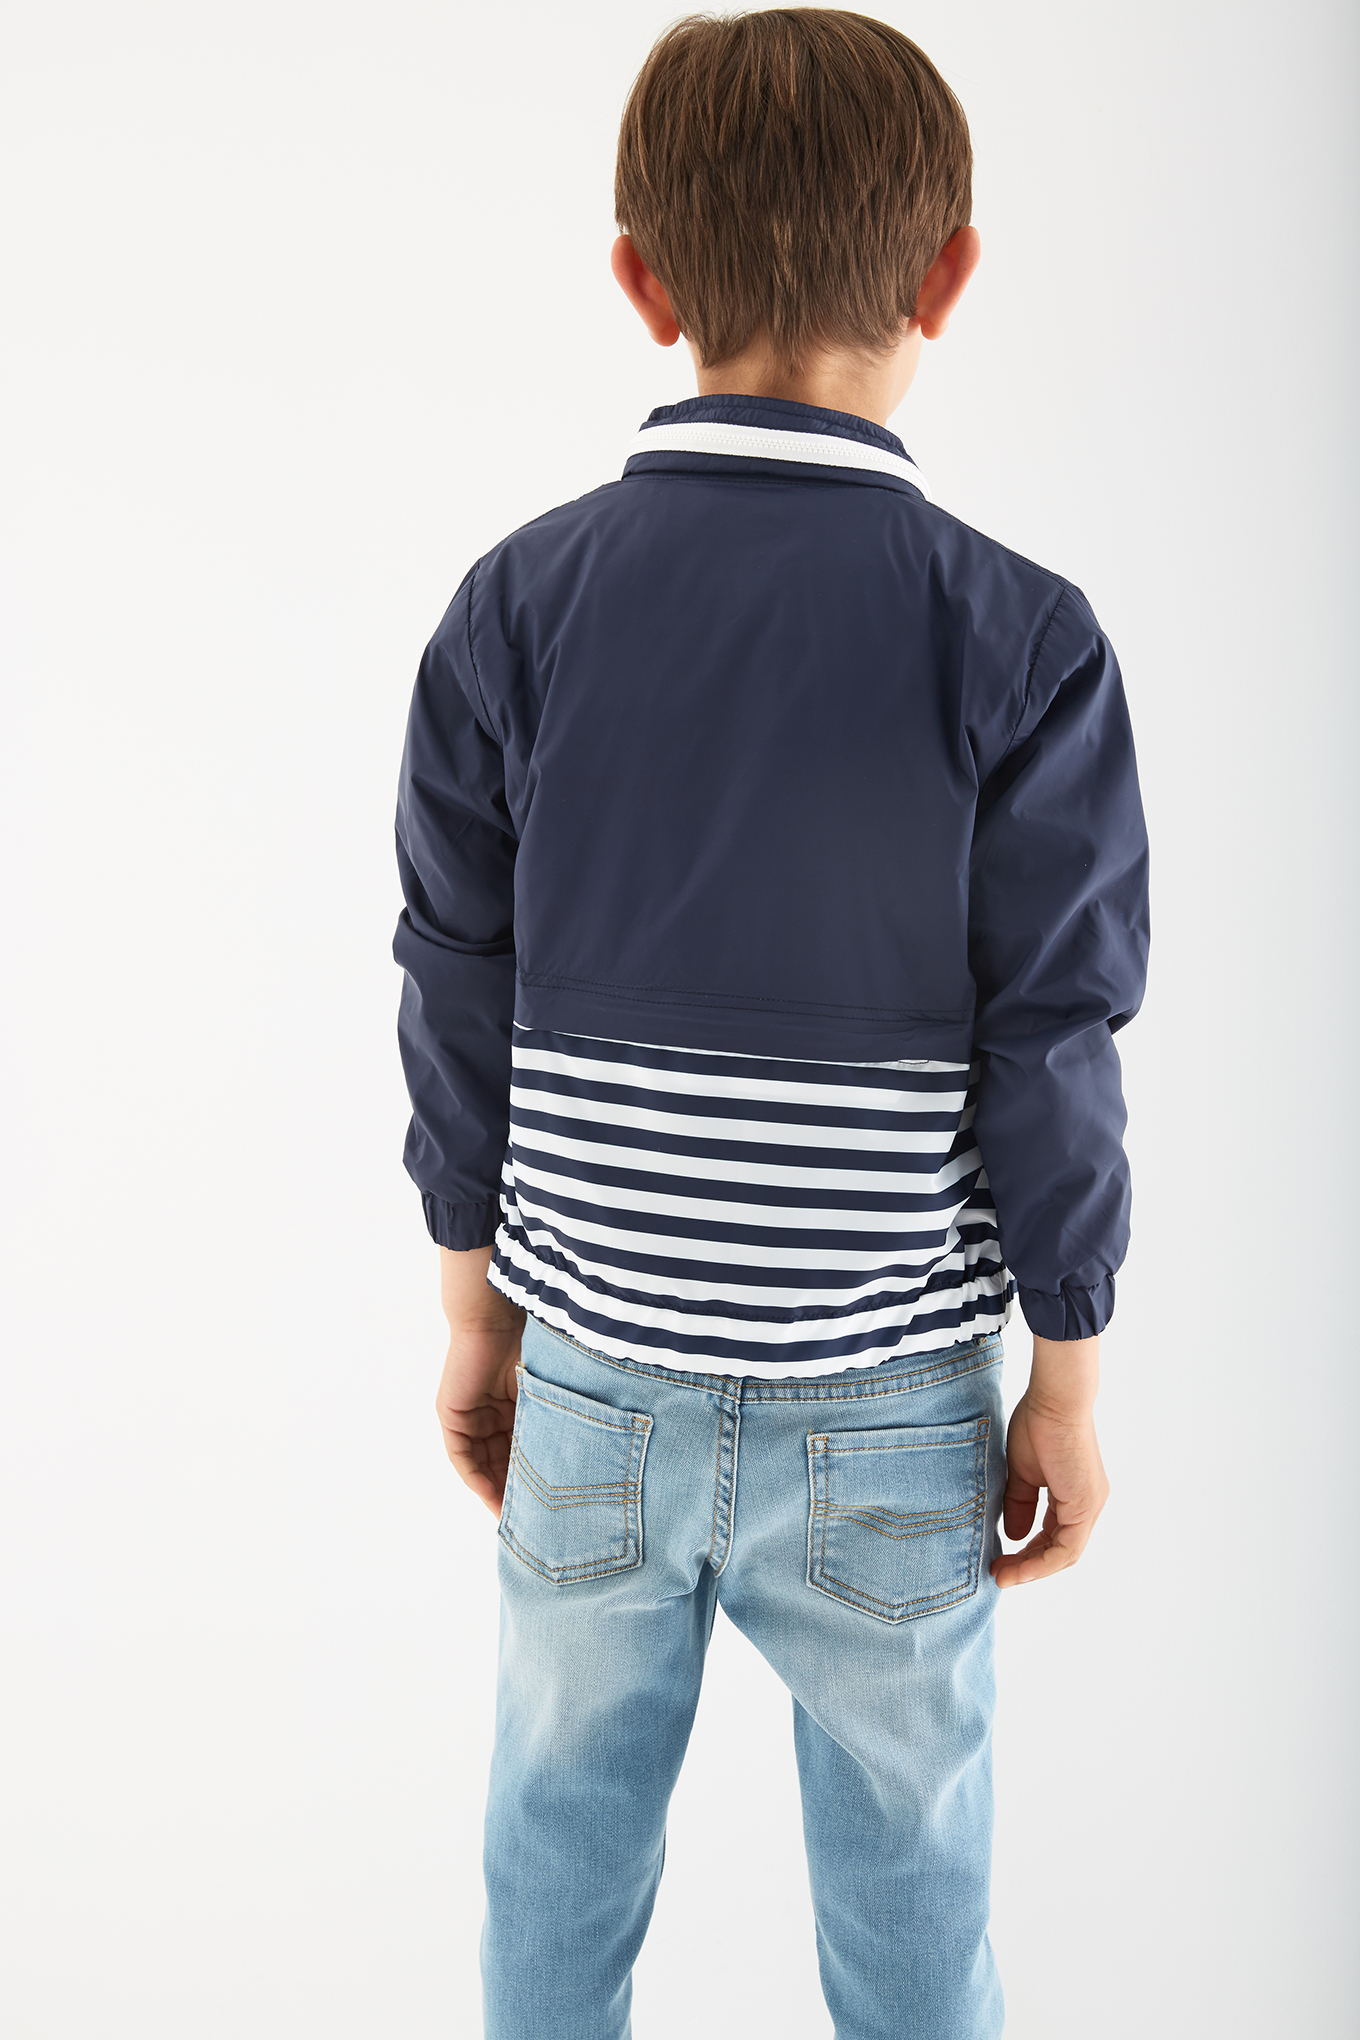 Jacket Dark Blue Sport Boy